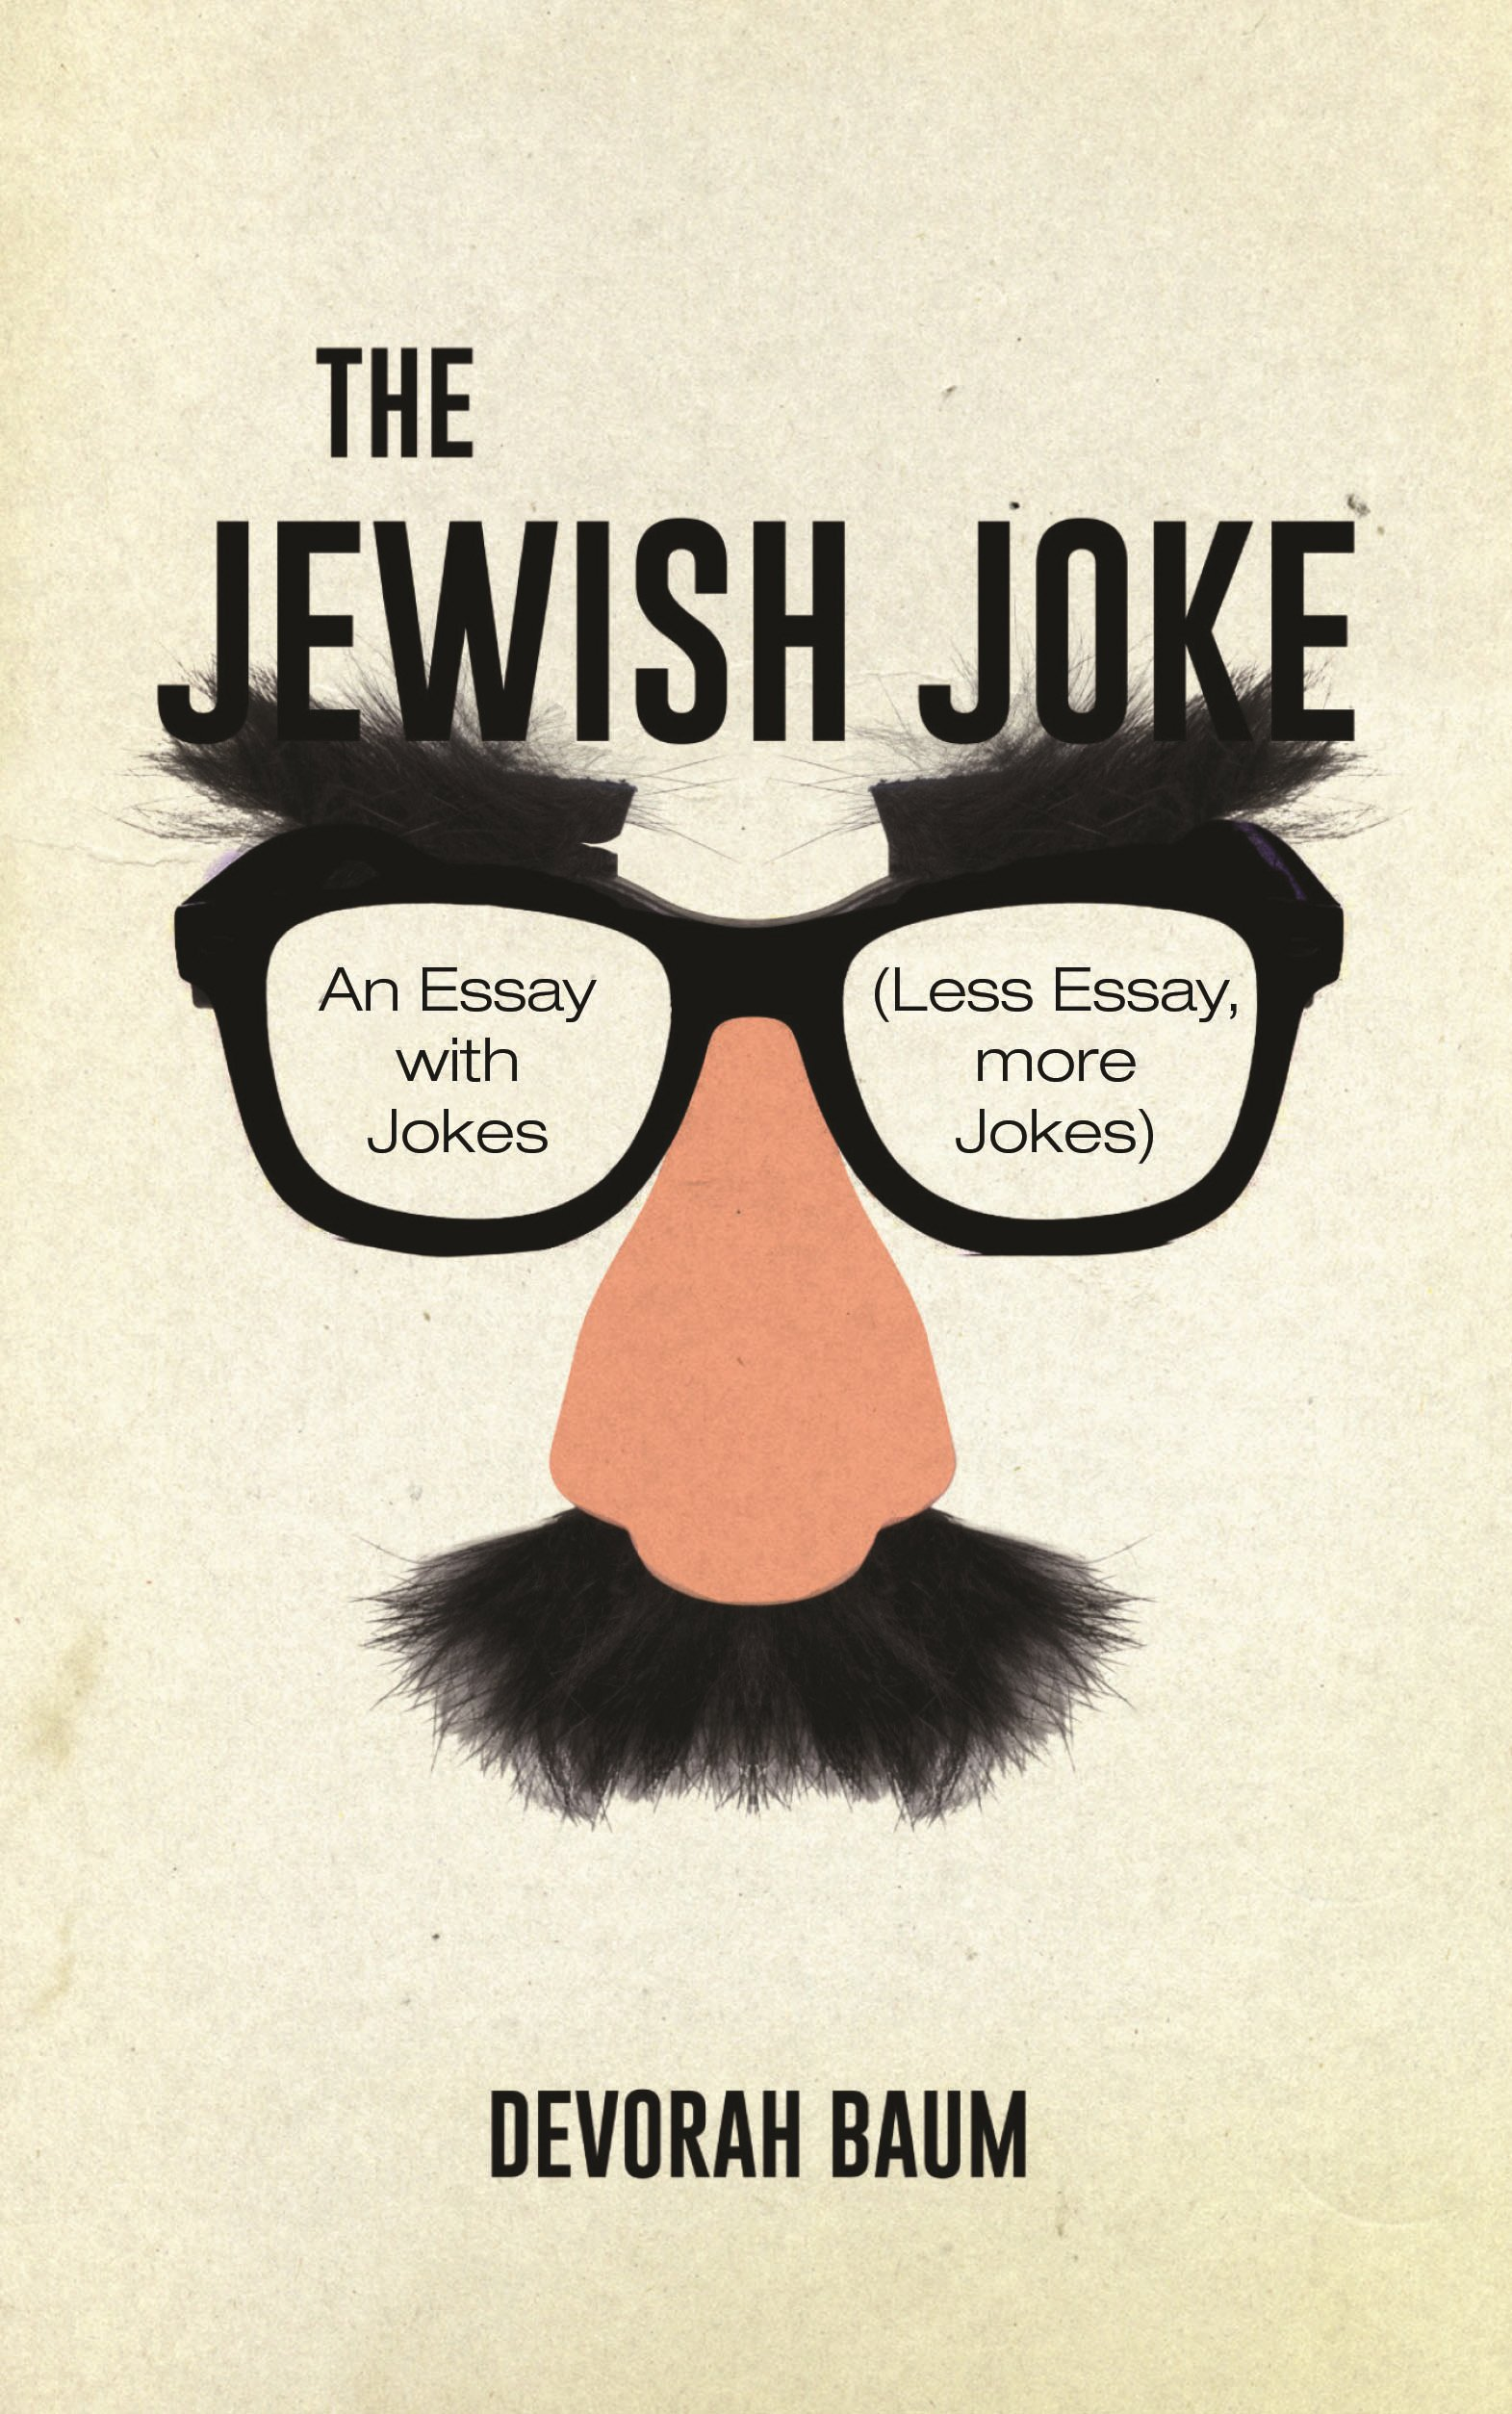 The Jewish Joke: Amazon.de: Devorah Baum: Fremdsprachige Bücher